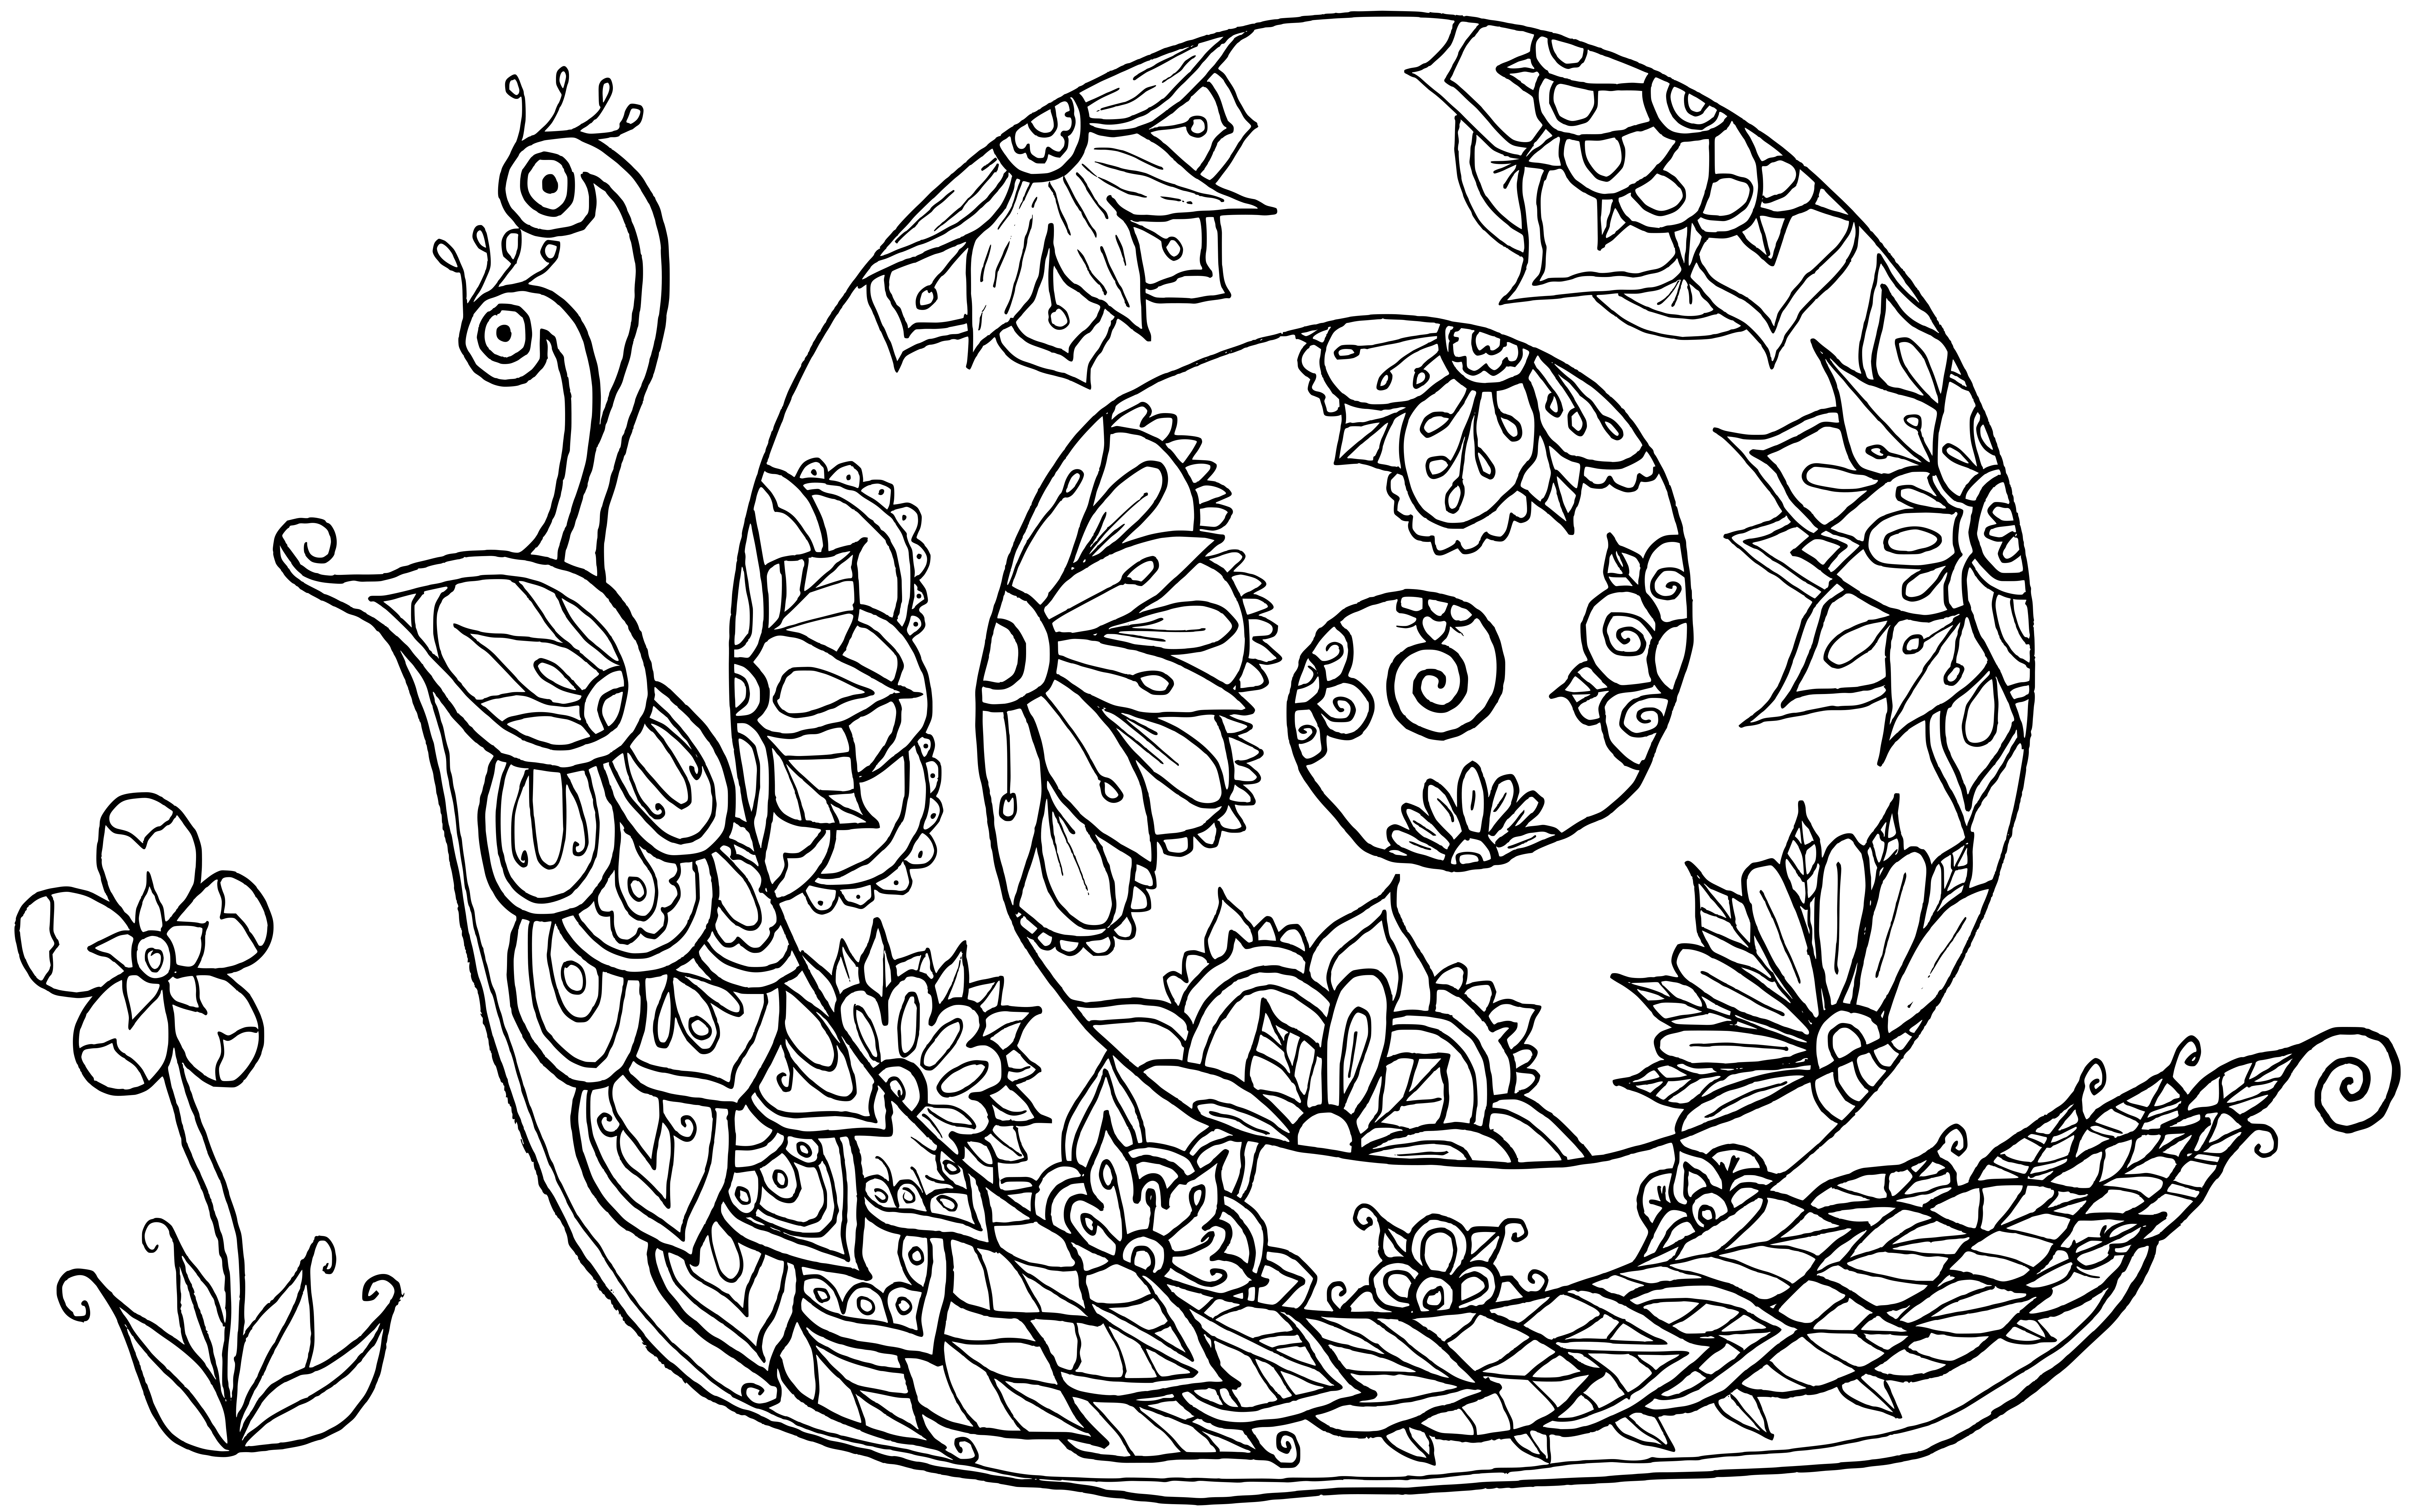 snail coloring page snail coloring pages to download and print for free coloring page snail